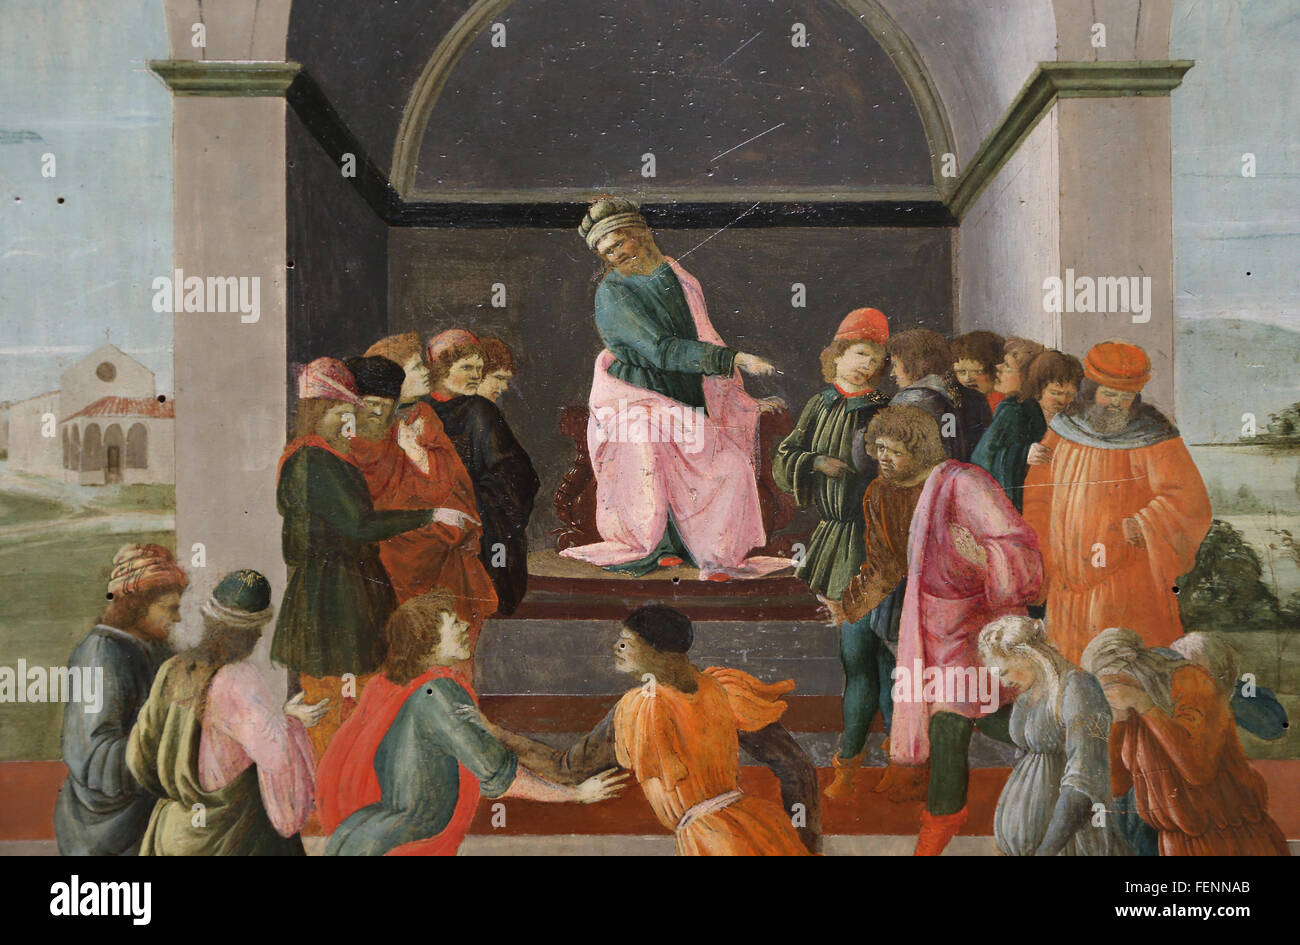 Story of Virginia: The Decemvir Condems Virginia to slavery. By Filippo Lippi (1406-1469). Quattrocento. - Stock Image